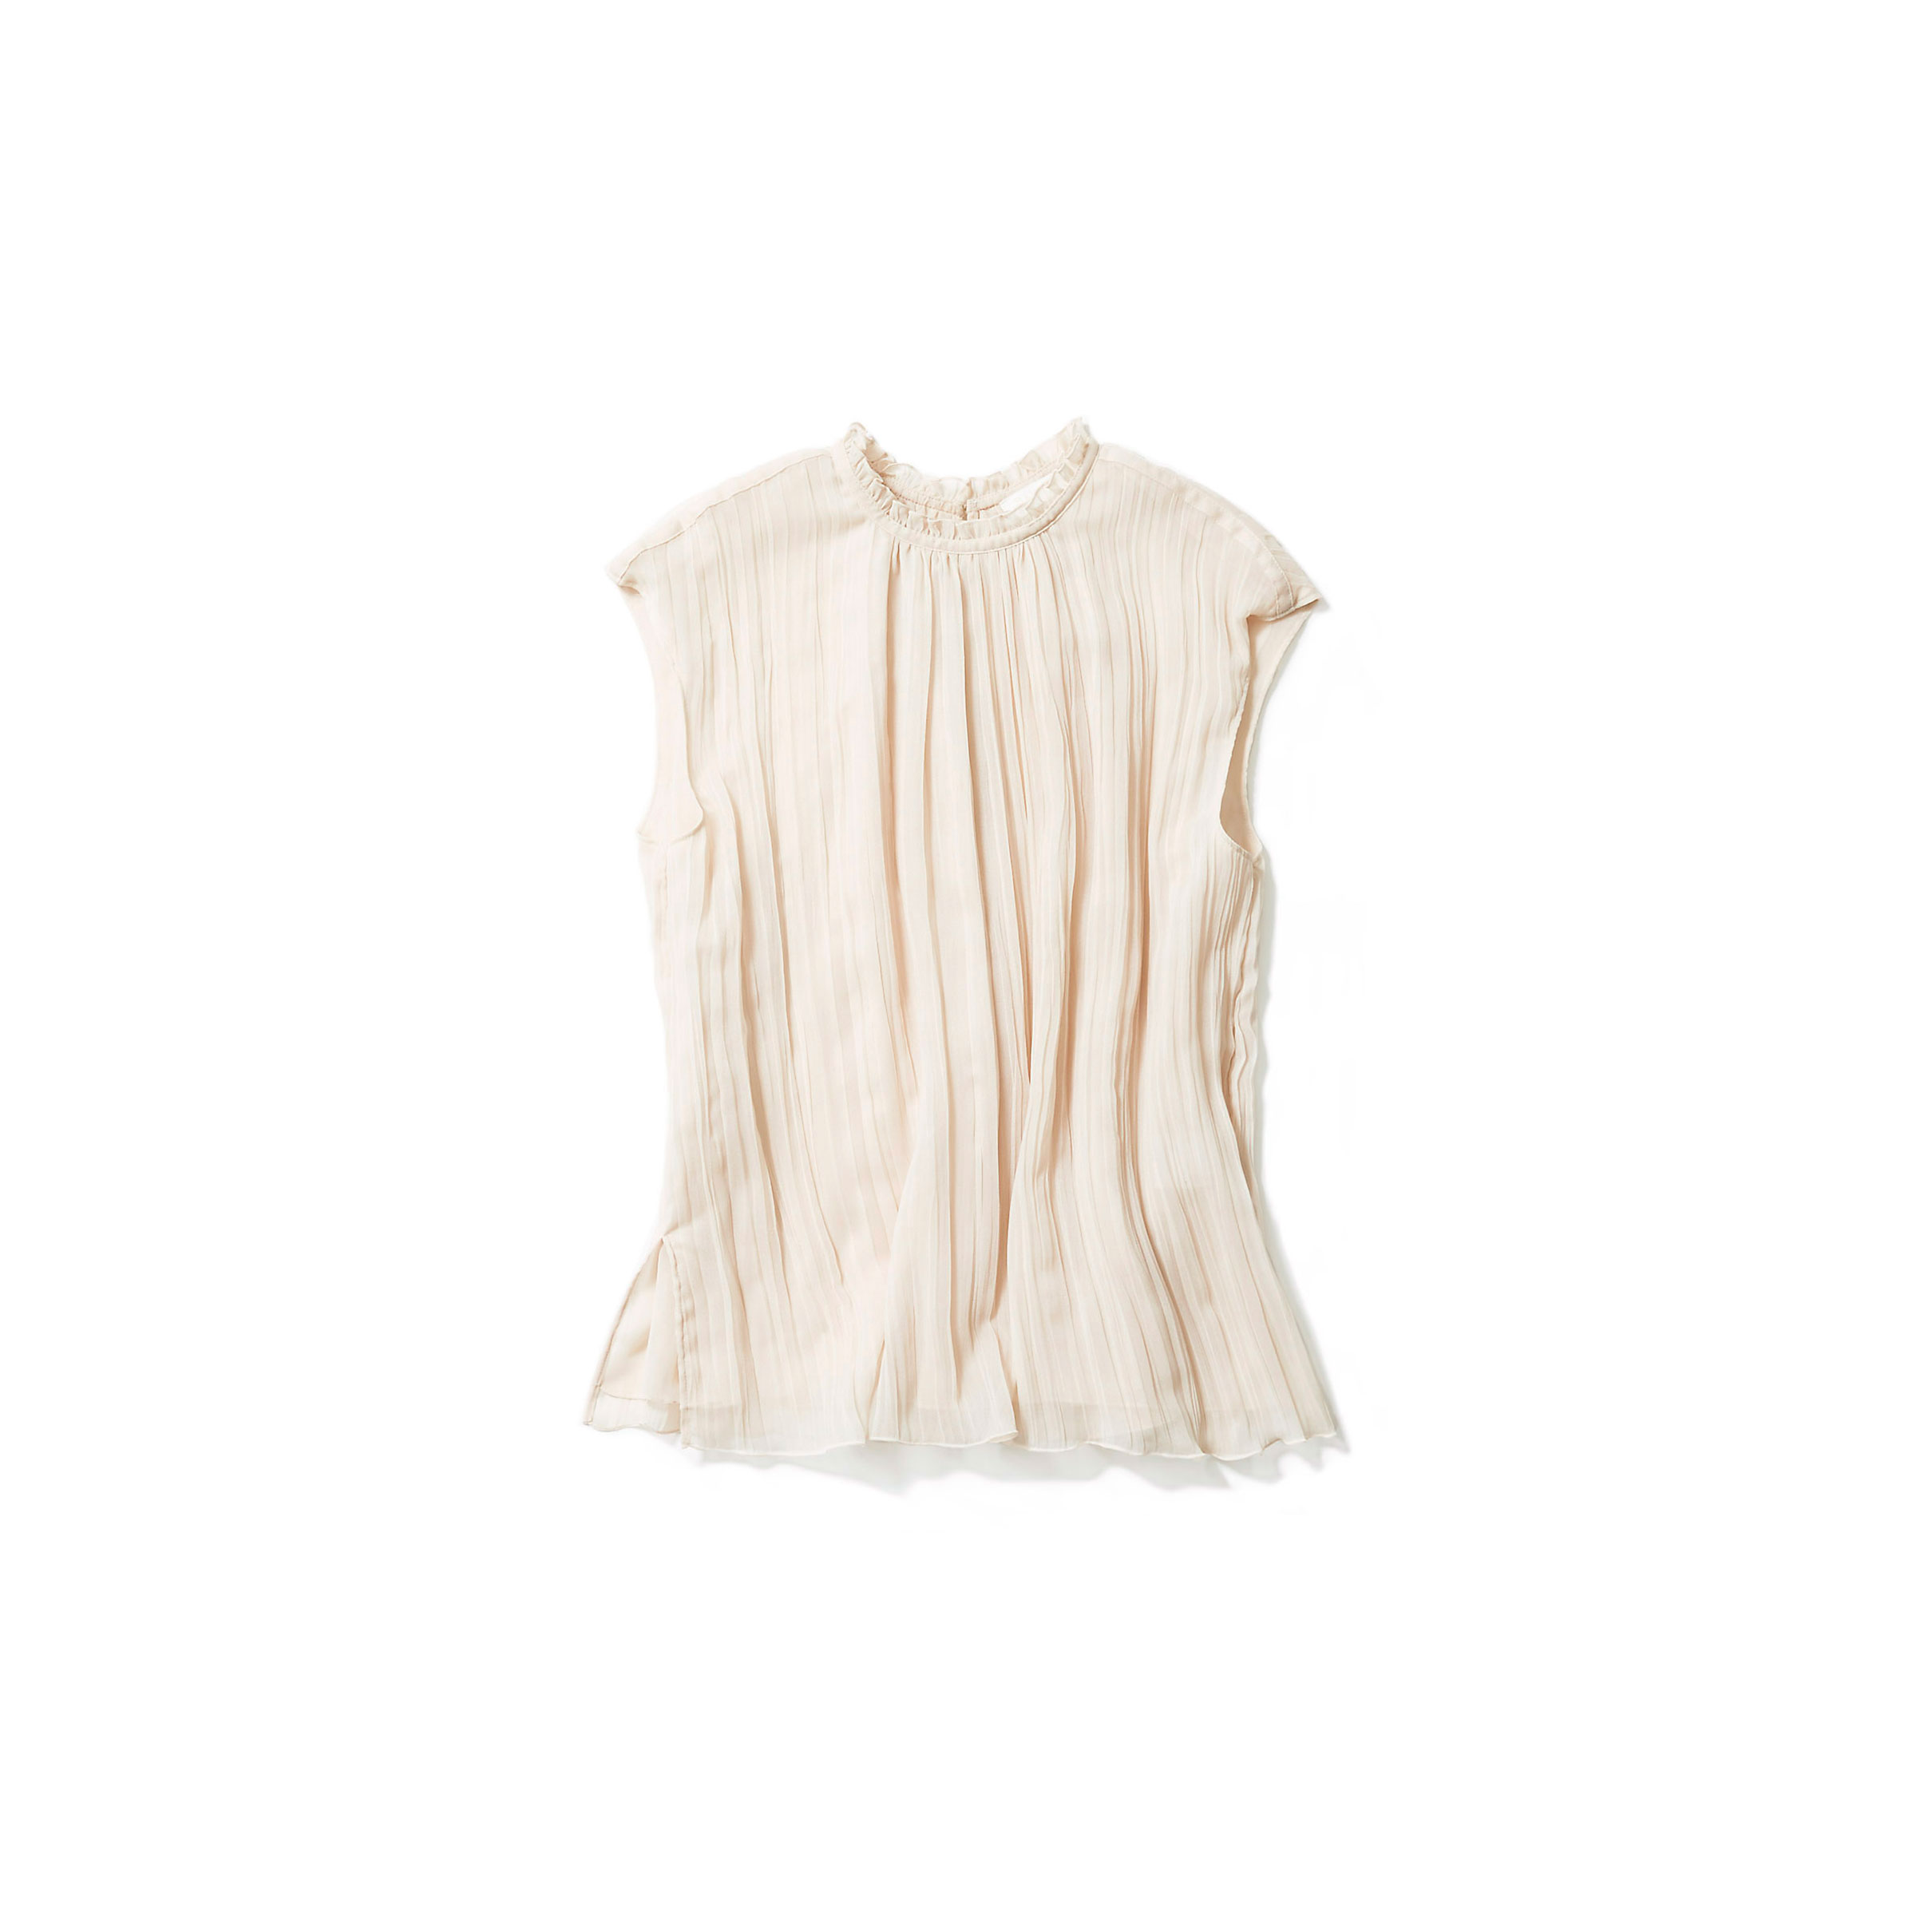 a blouse of my dream